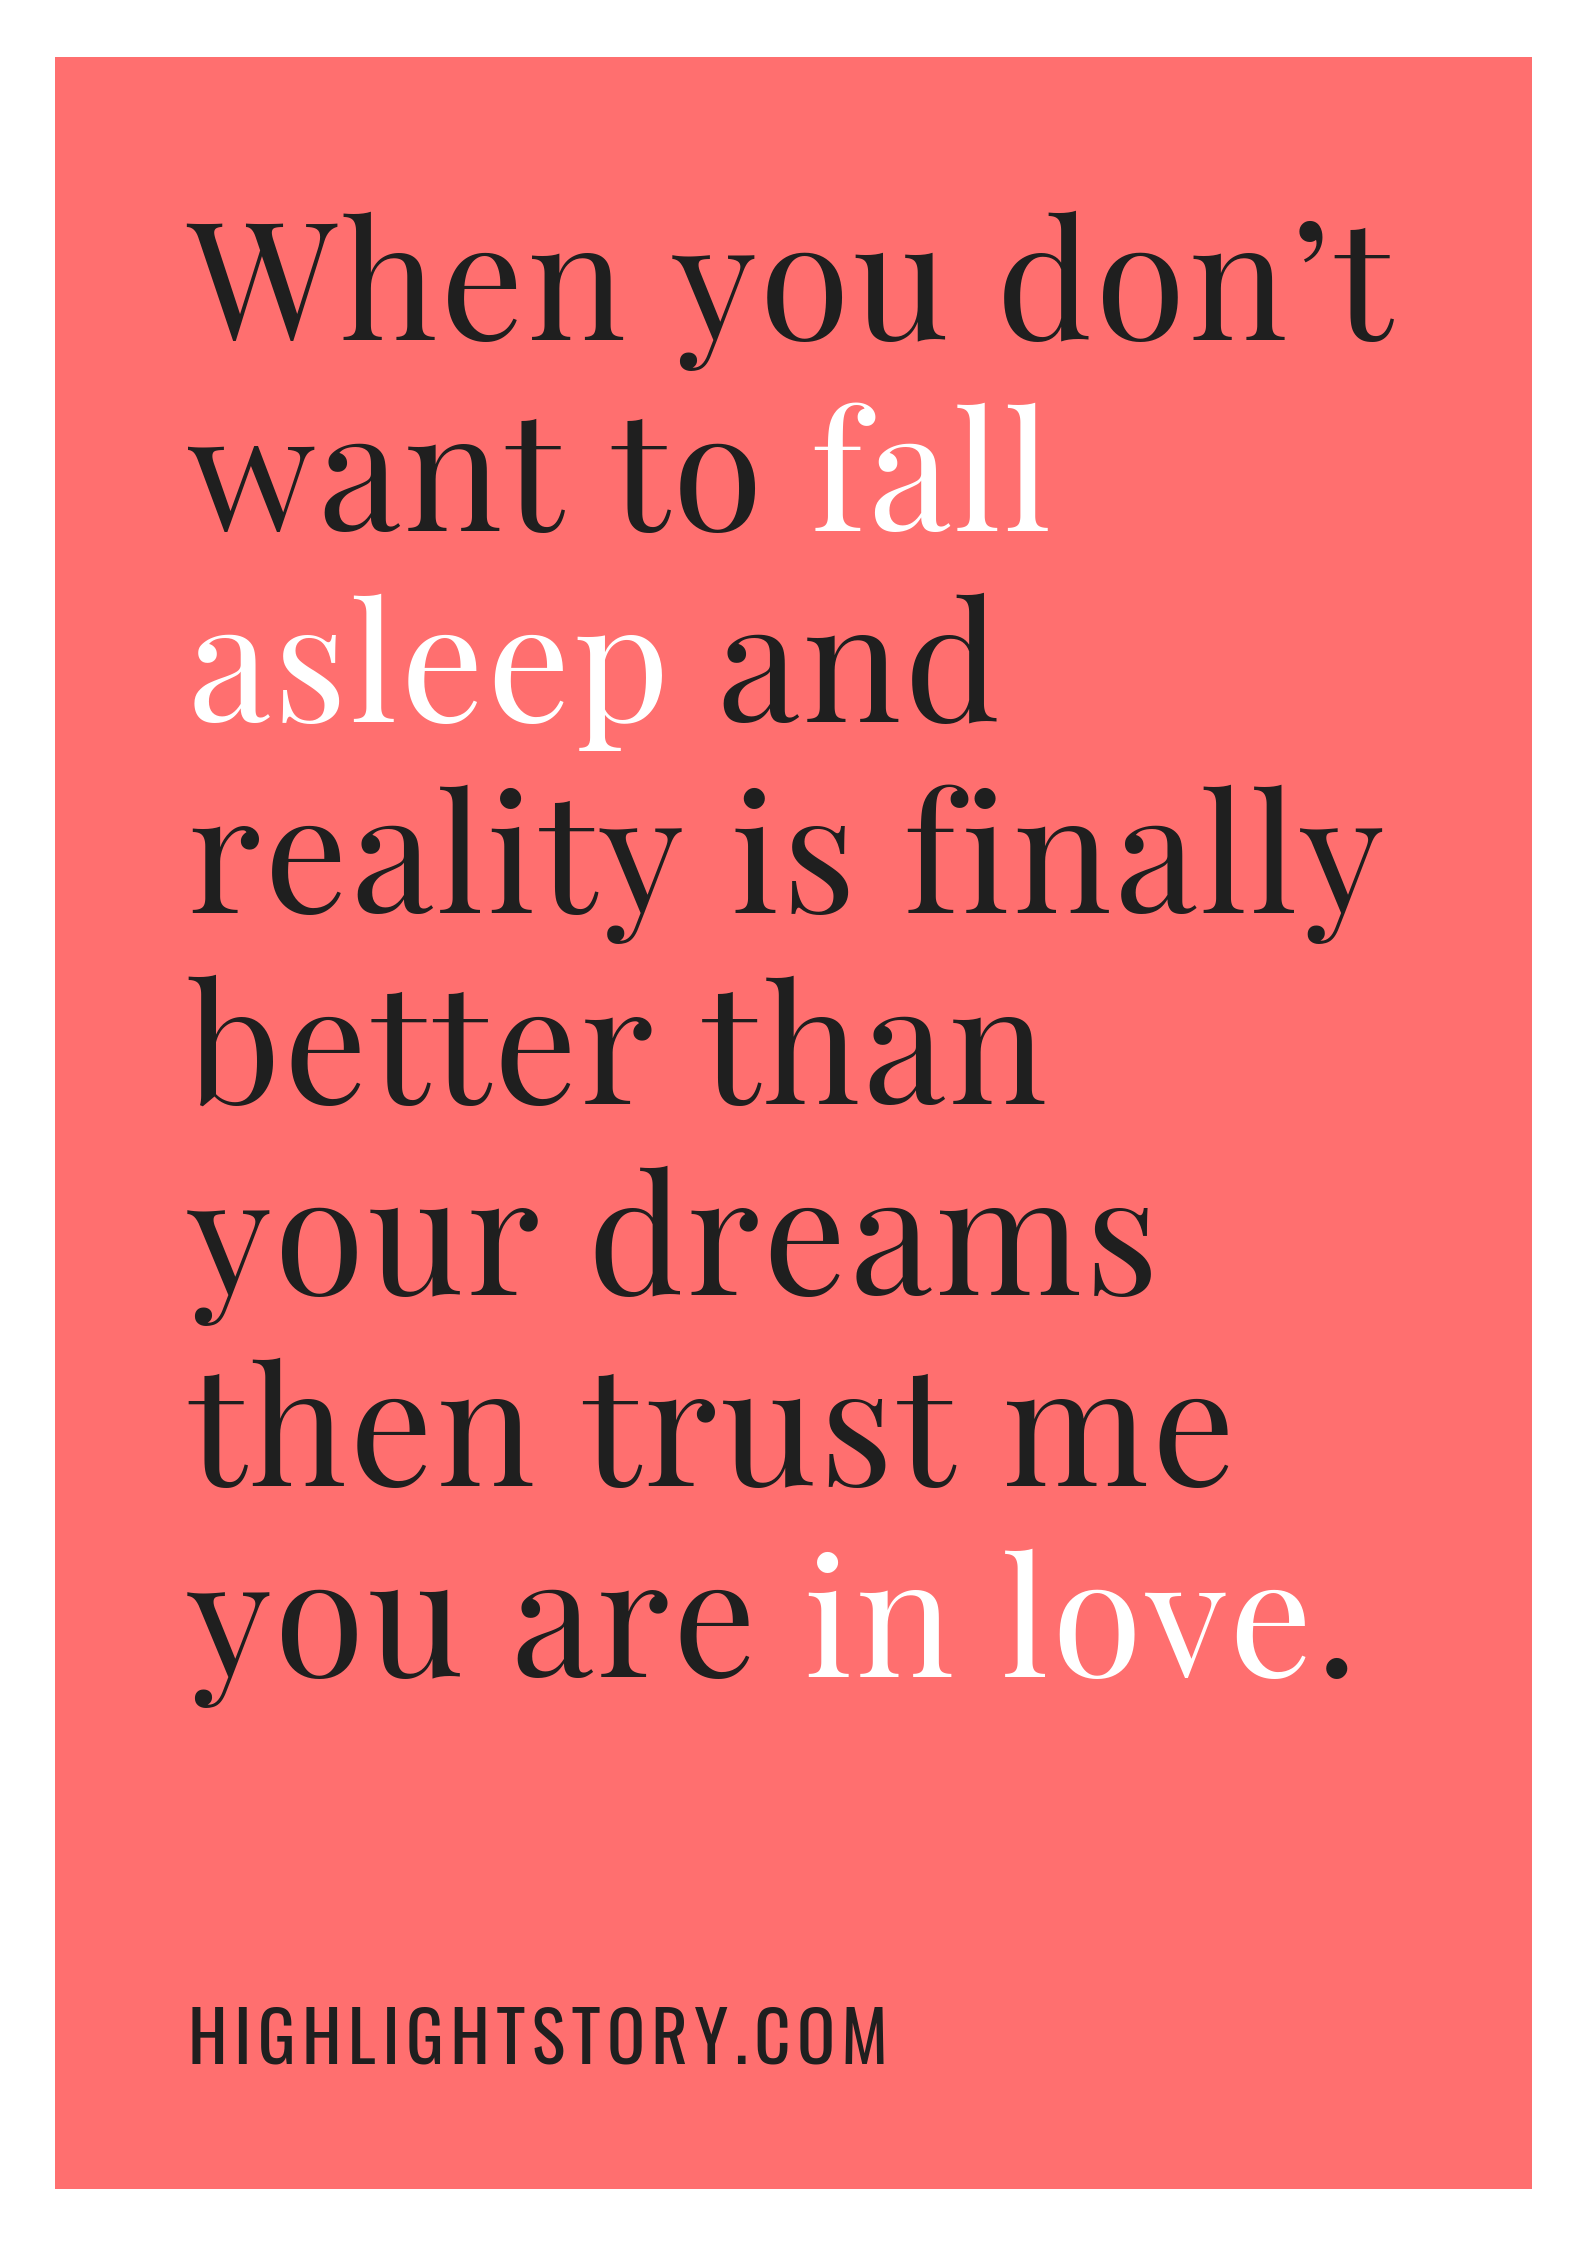 When you don't want to fall asleep and reality is finally better than your dreams then trust me you are in love.